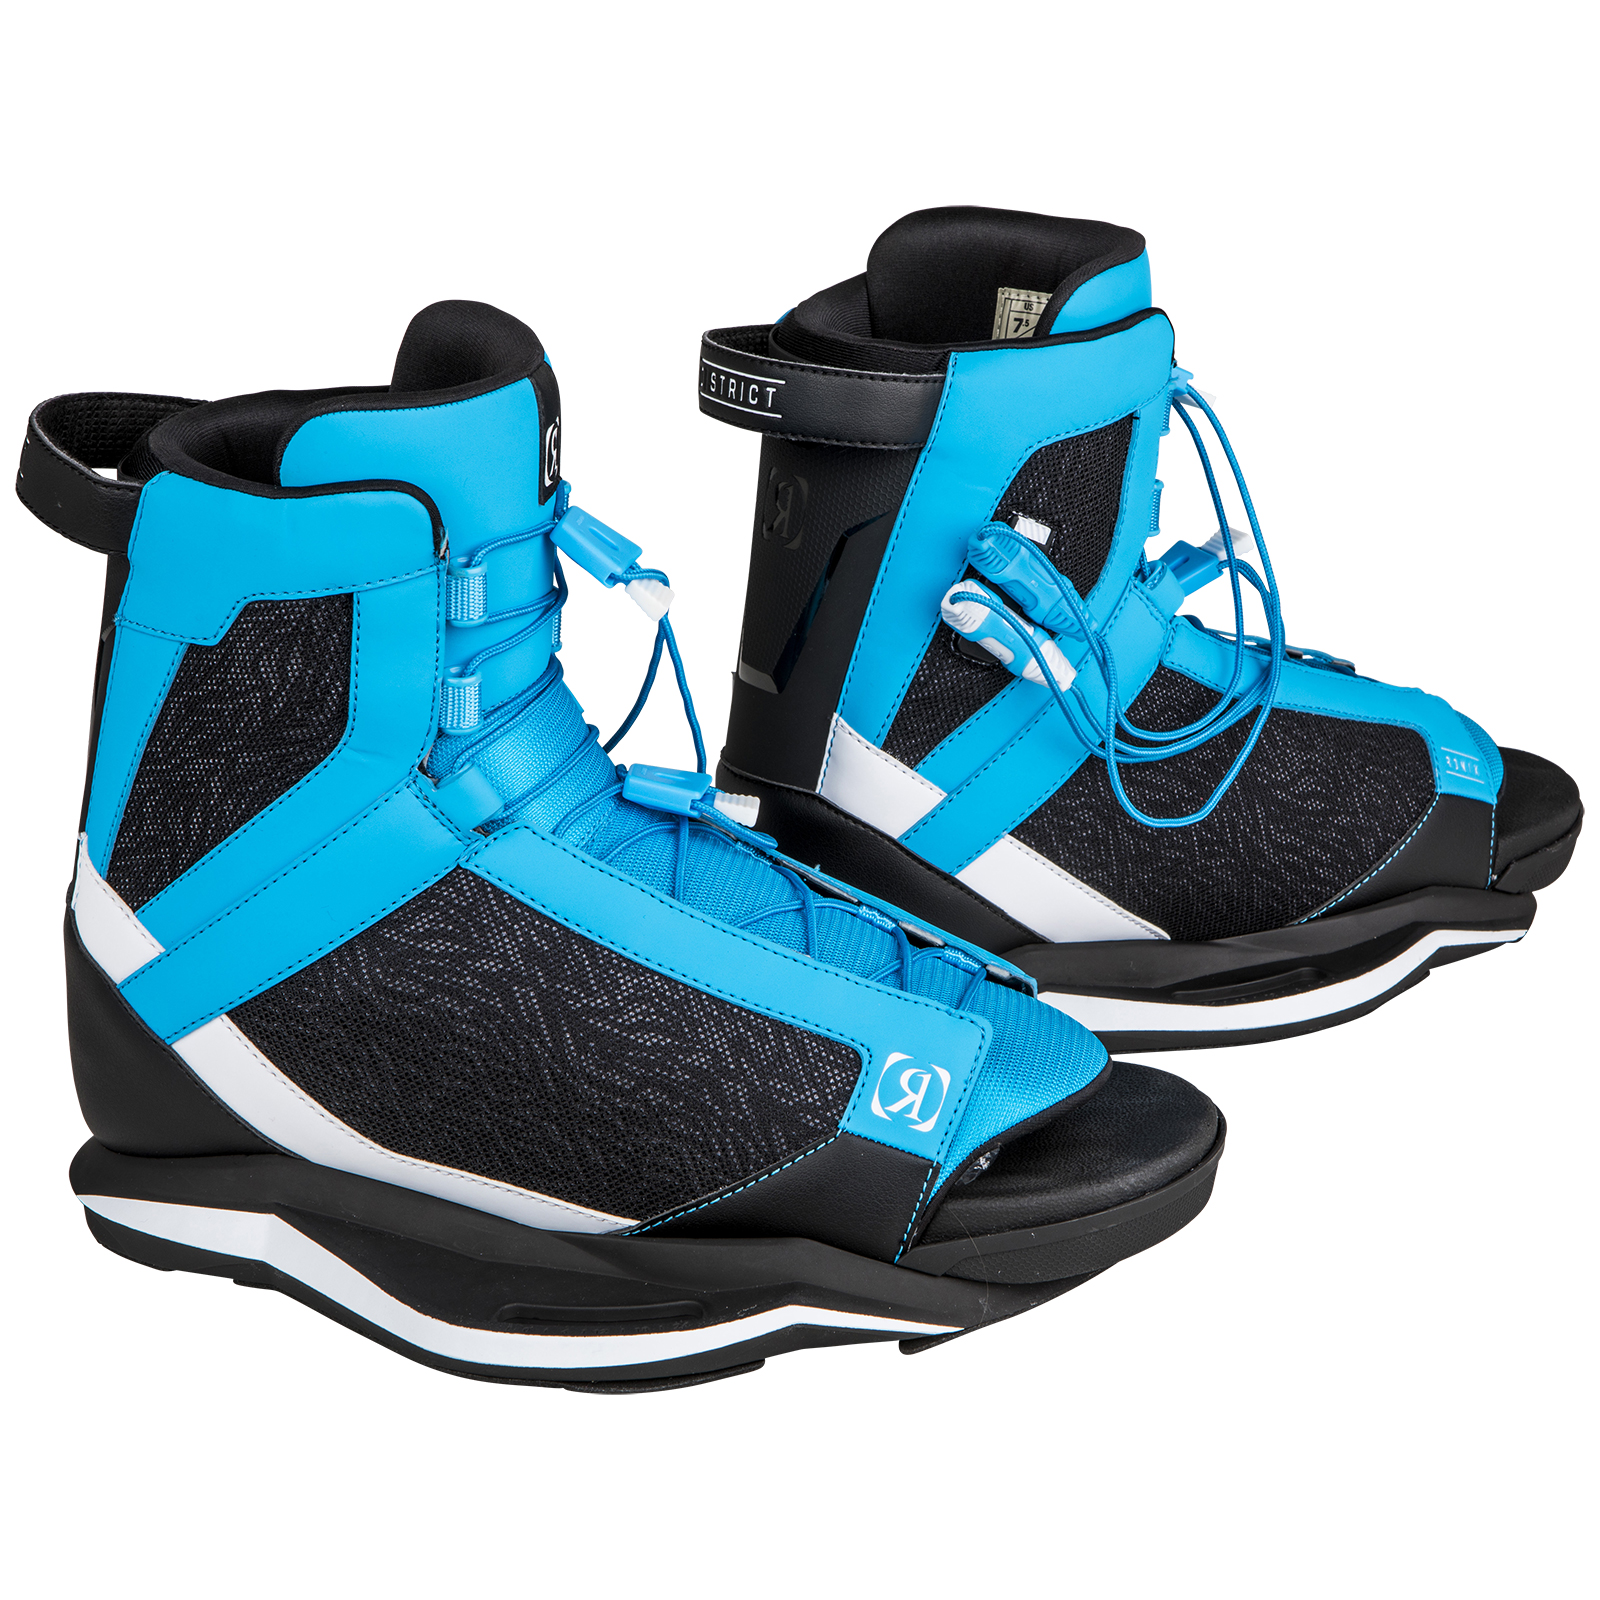 DISTRICT  - BLUE / WHITE / BLACK BOOT RONIX 2019